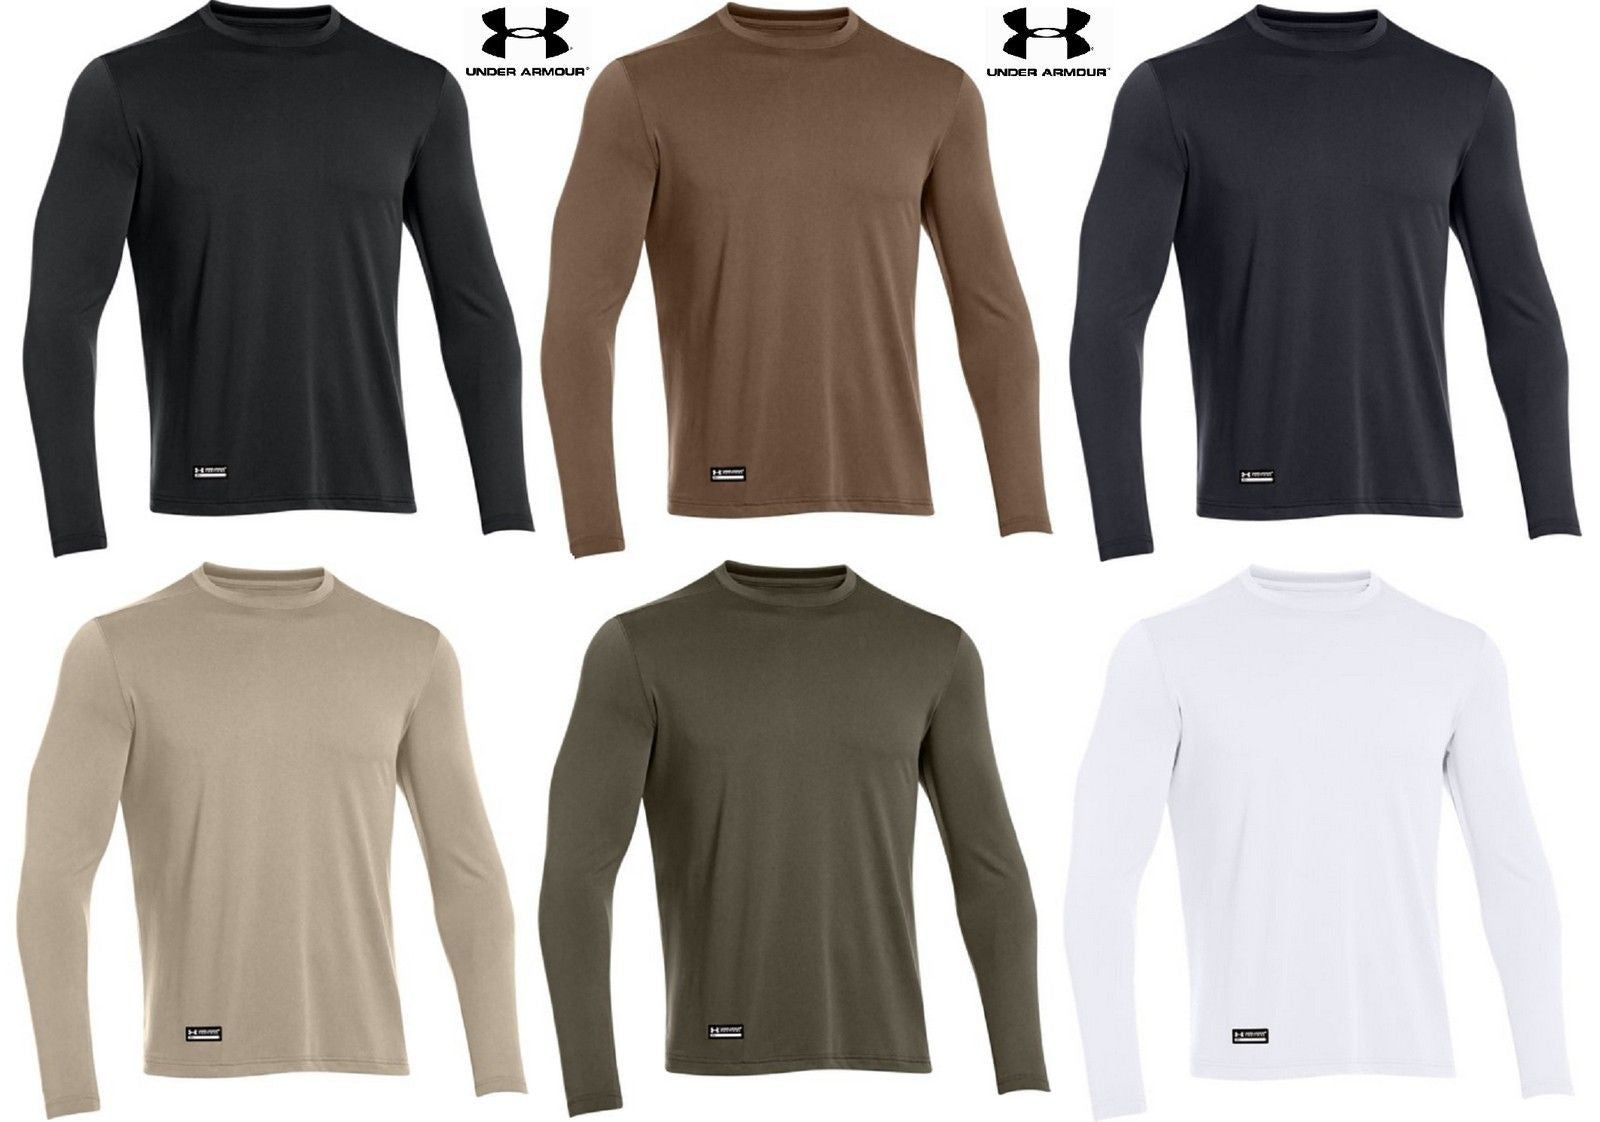 85a53f8ea896 Under Armour Mens Tactical Tech Long Sleeve T-Shirt - UA Loose Fit Tee Shirt  ...